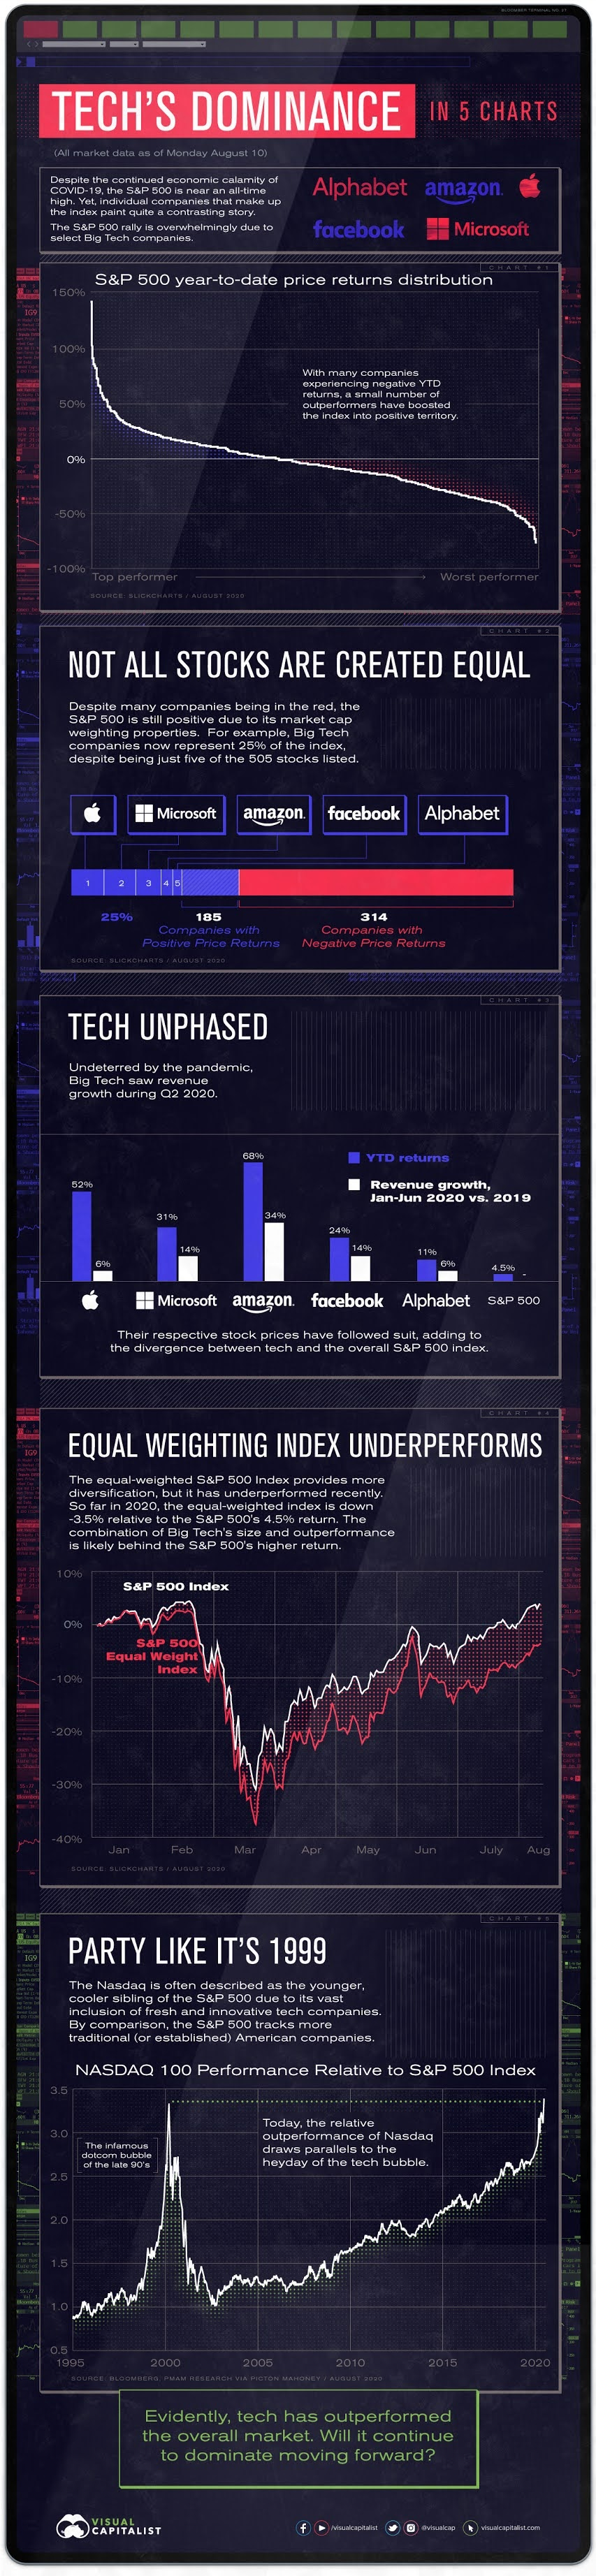 The Stocks to Rule Them All: Big Tech's Might in Five Charts #Infographic